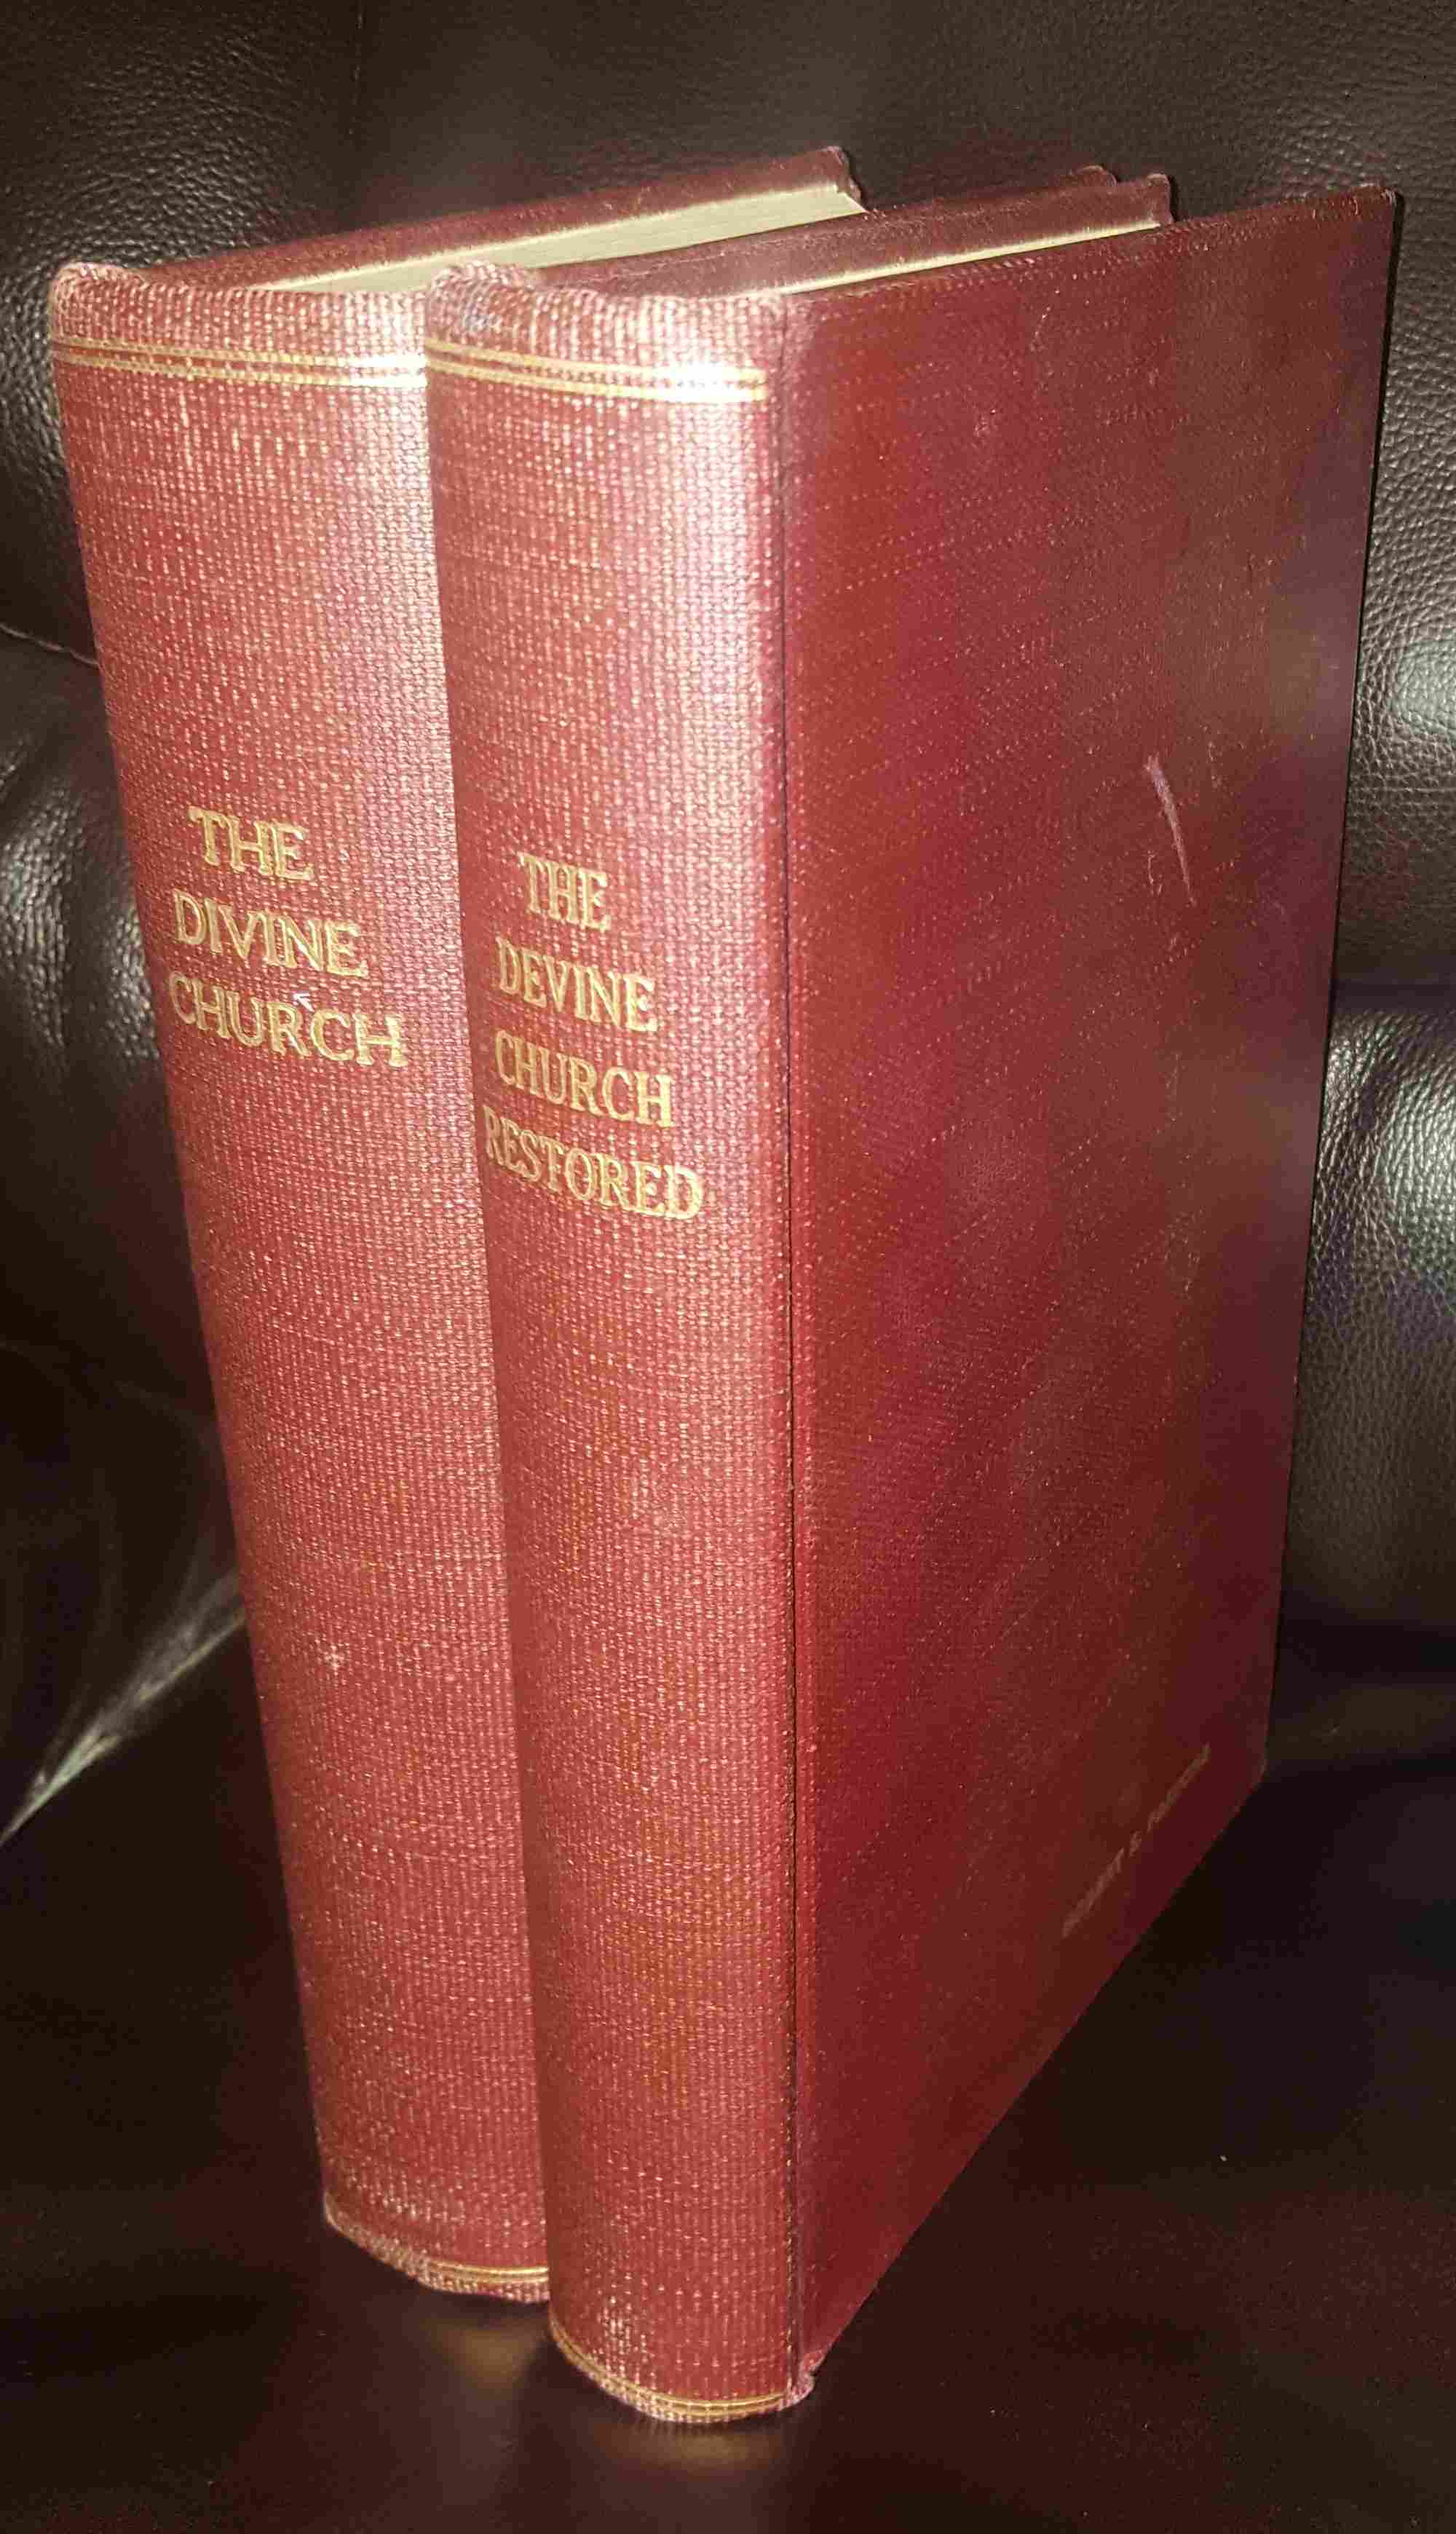 Image for THE DIVINE CHURCH (5 VOLUME SET)